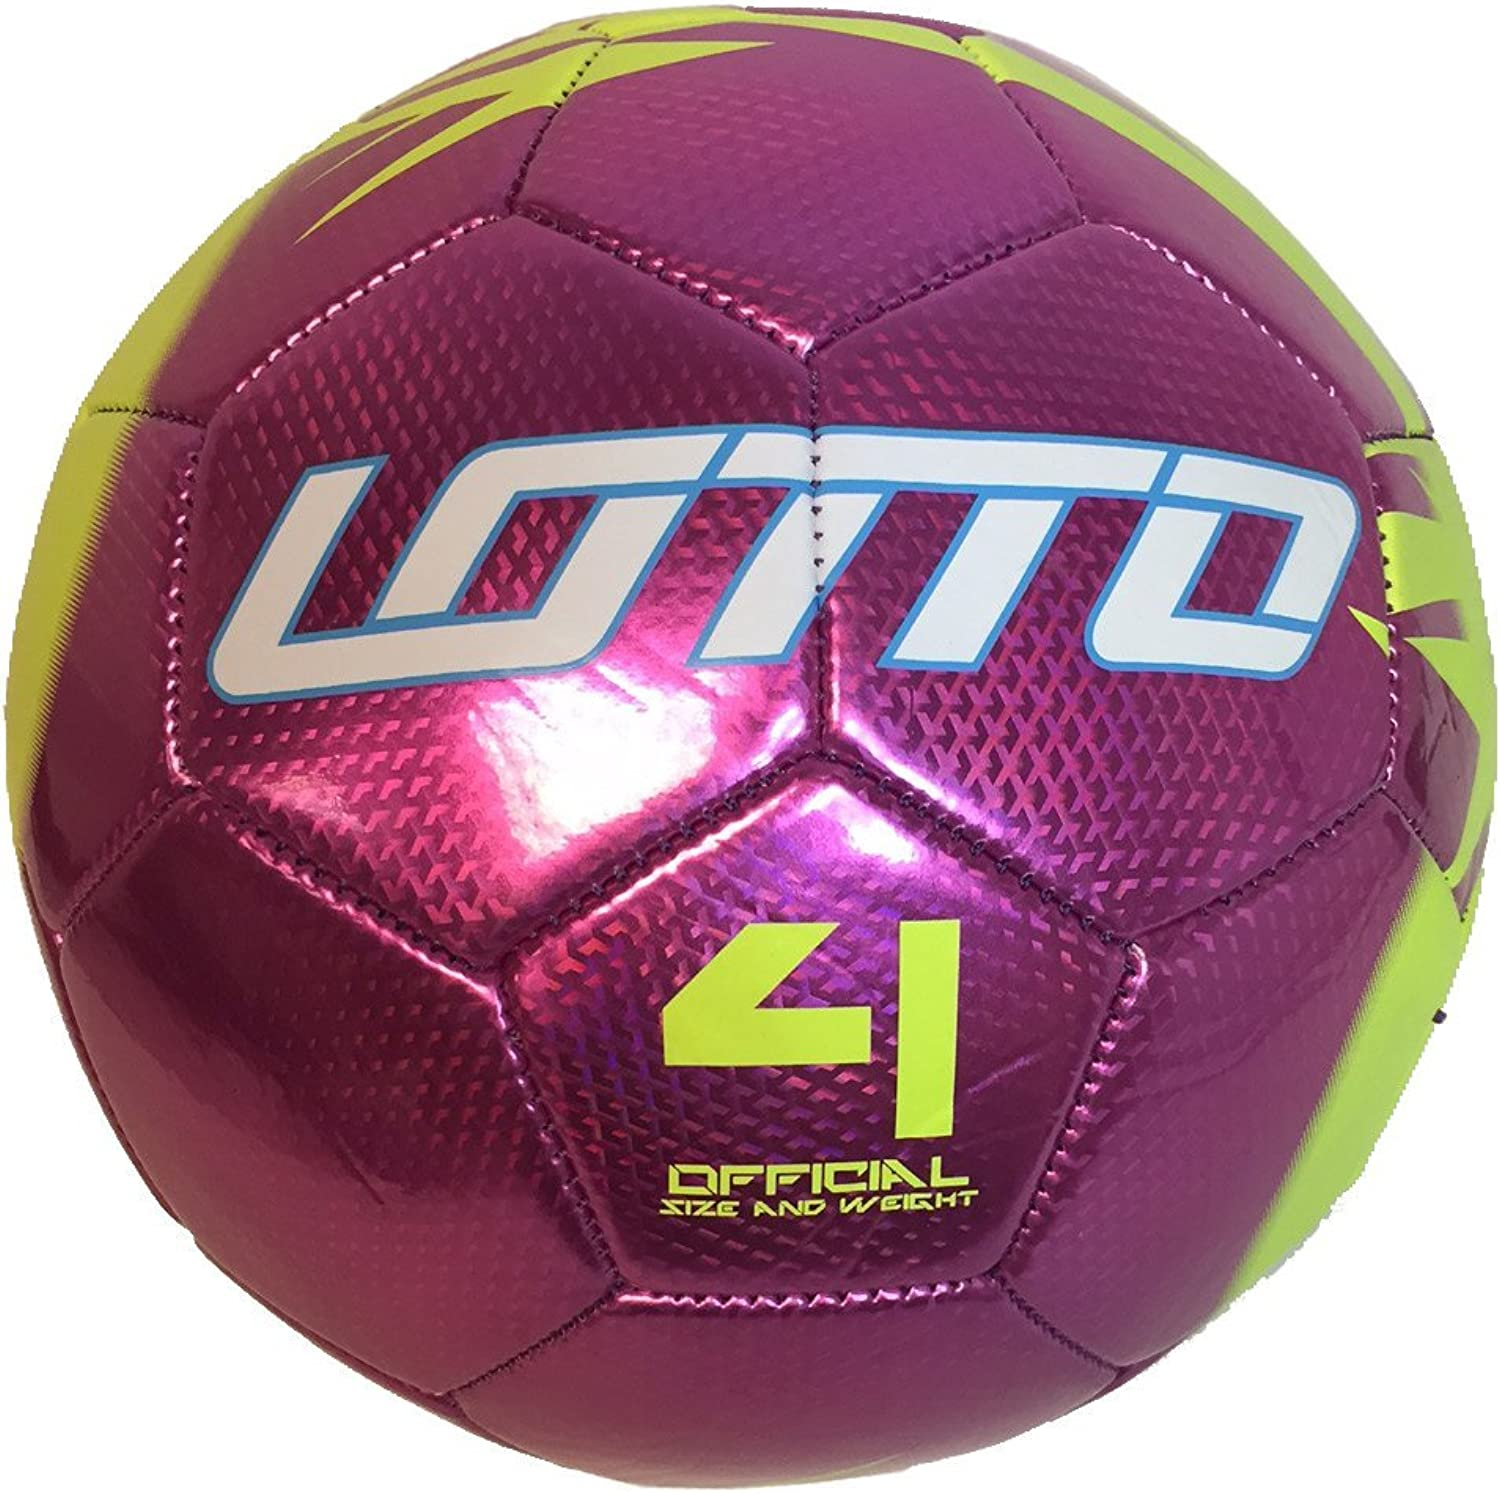 Lotto Girls Stadio Soccer Ball, Forza Pink Volt, Size 4